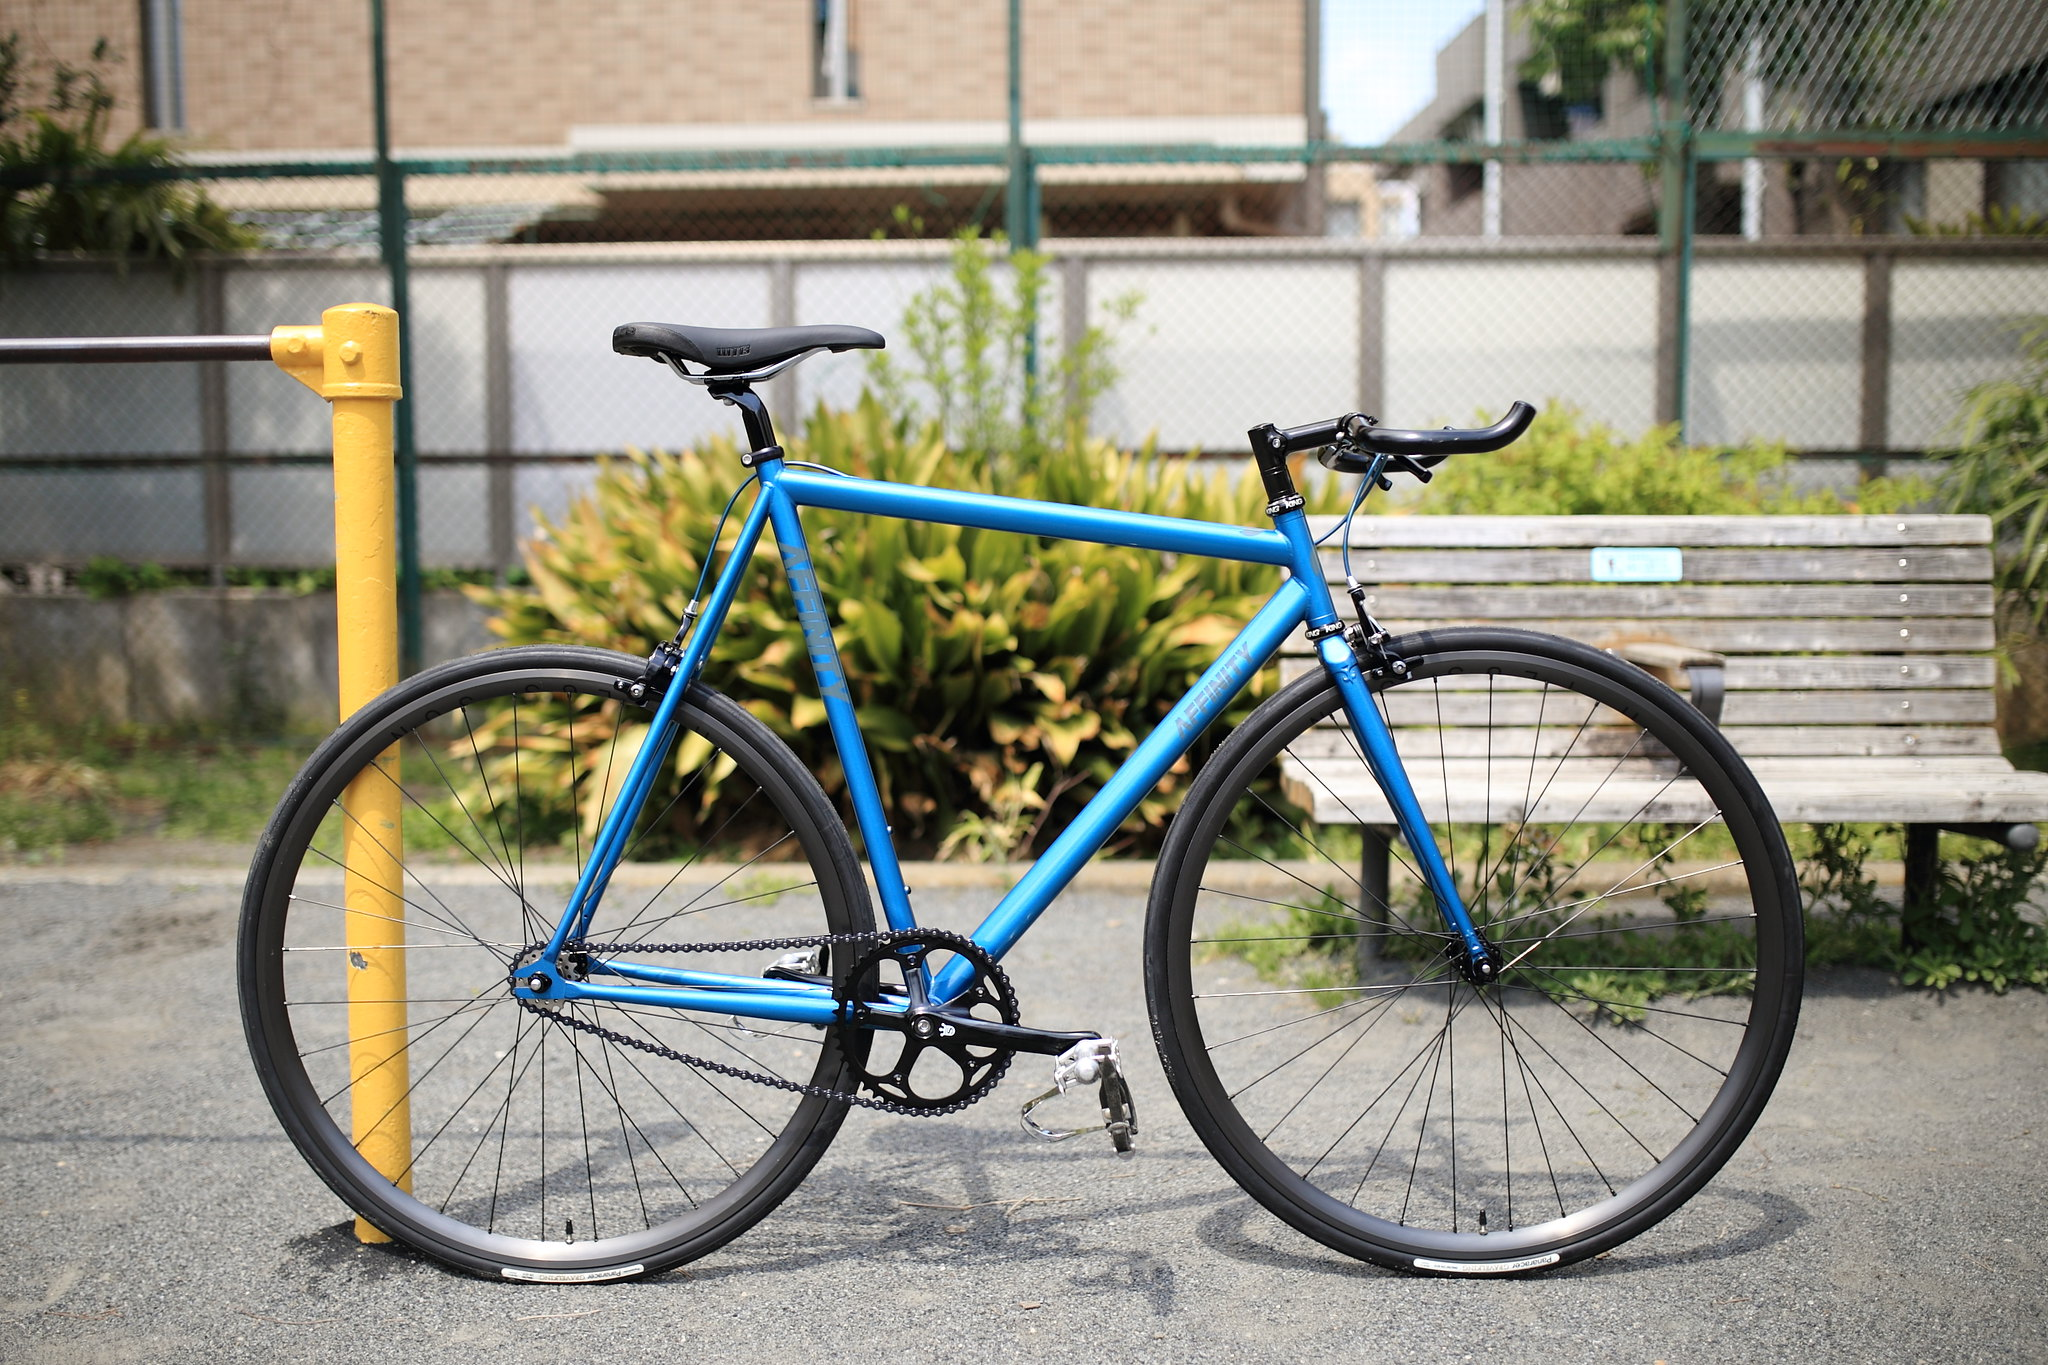 *AFFINITY CYCLES* lo pro complete bike